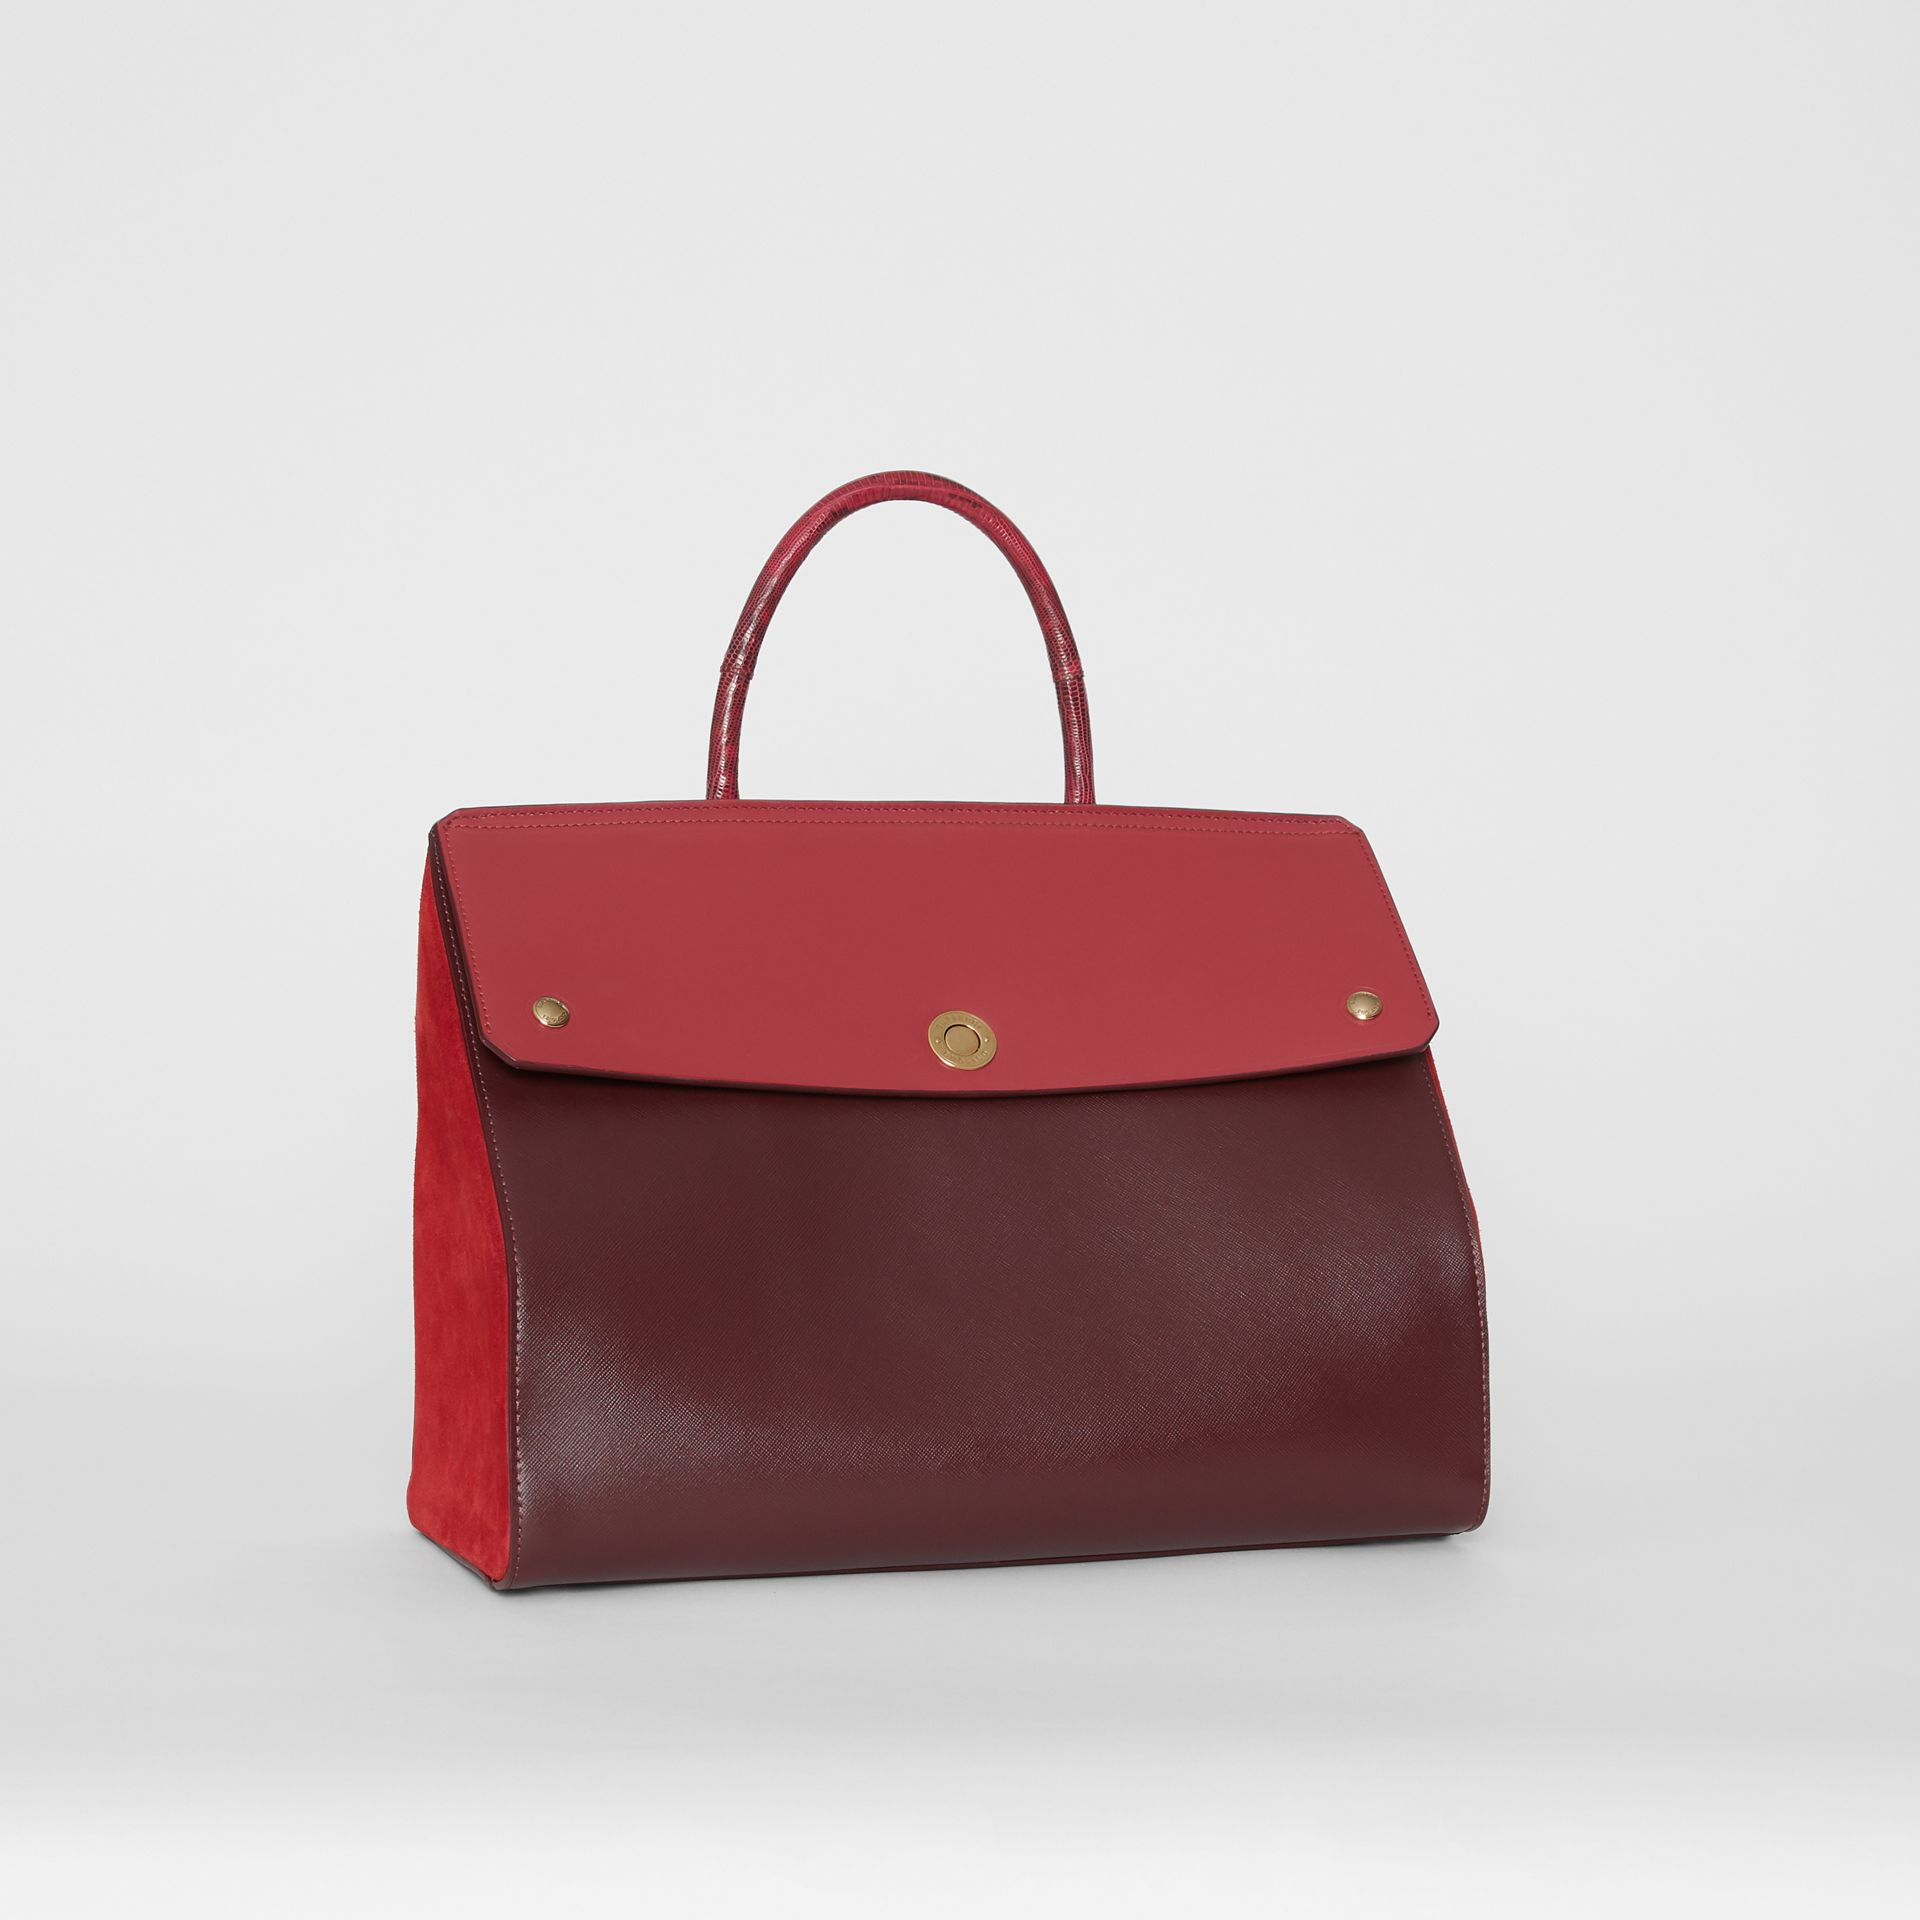 Medium Leather and Suede Elizabeth Bag in Crimson - Women | Burberry Australia - gallery image 6